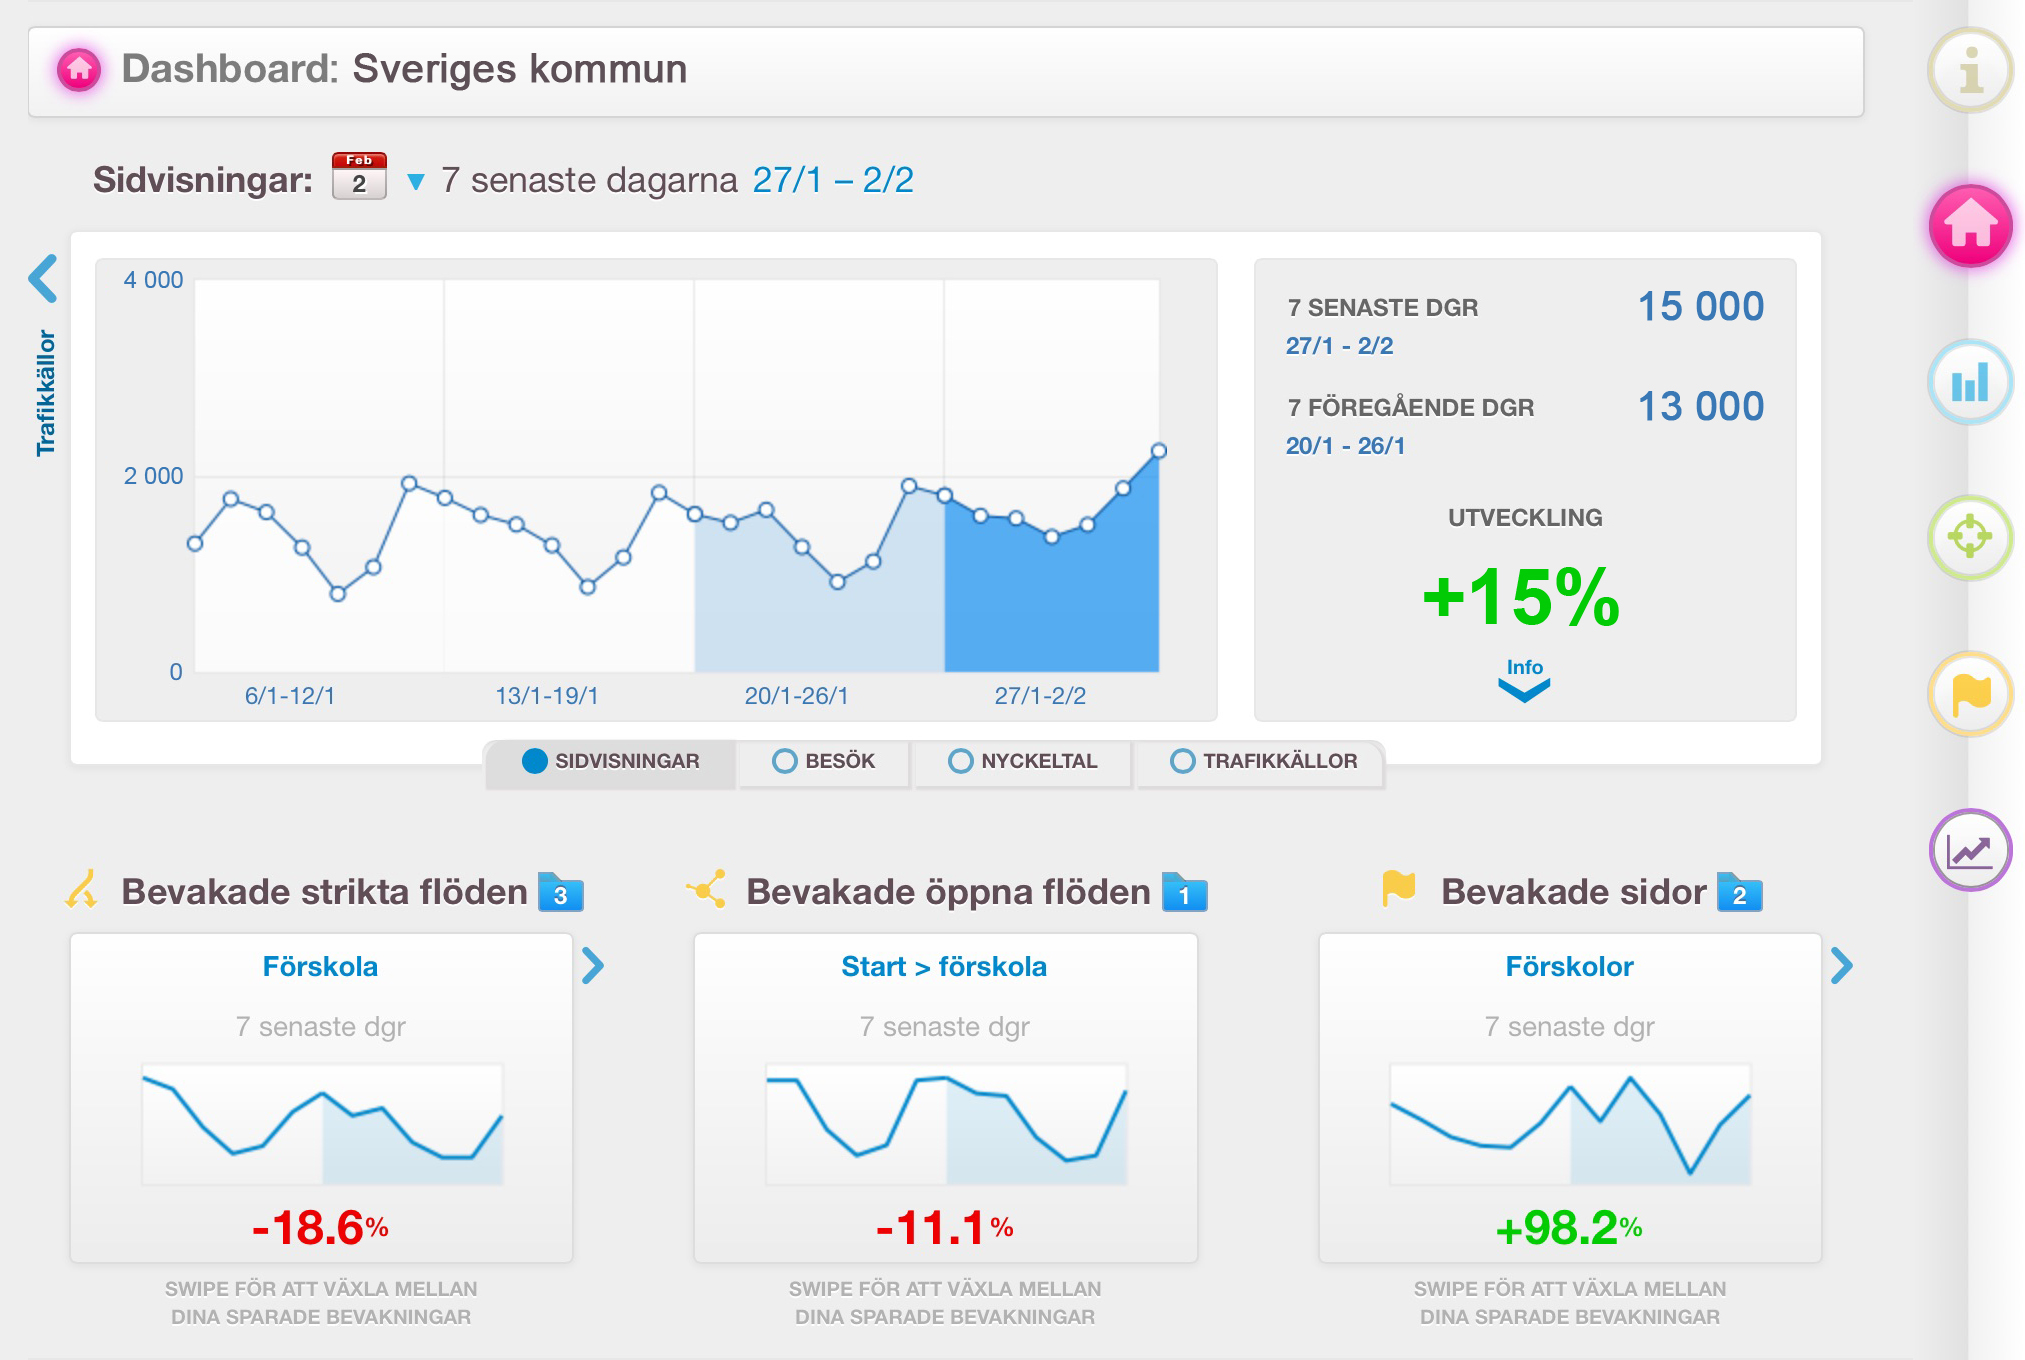 insight.dashboard